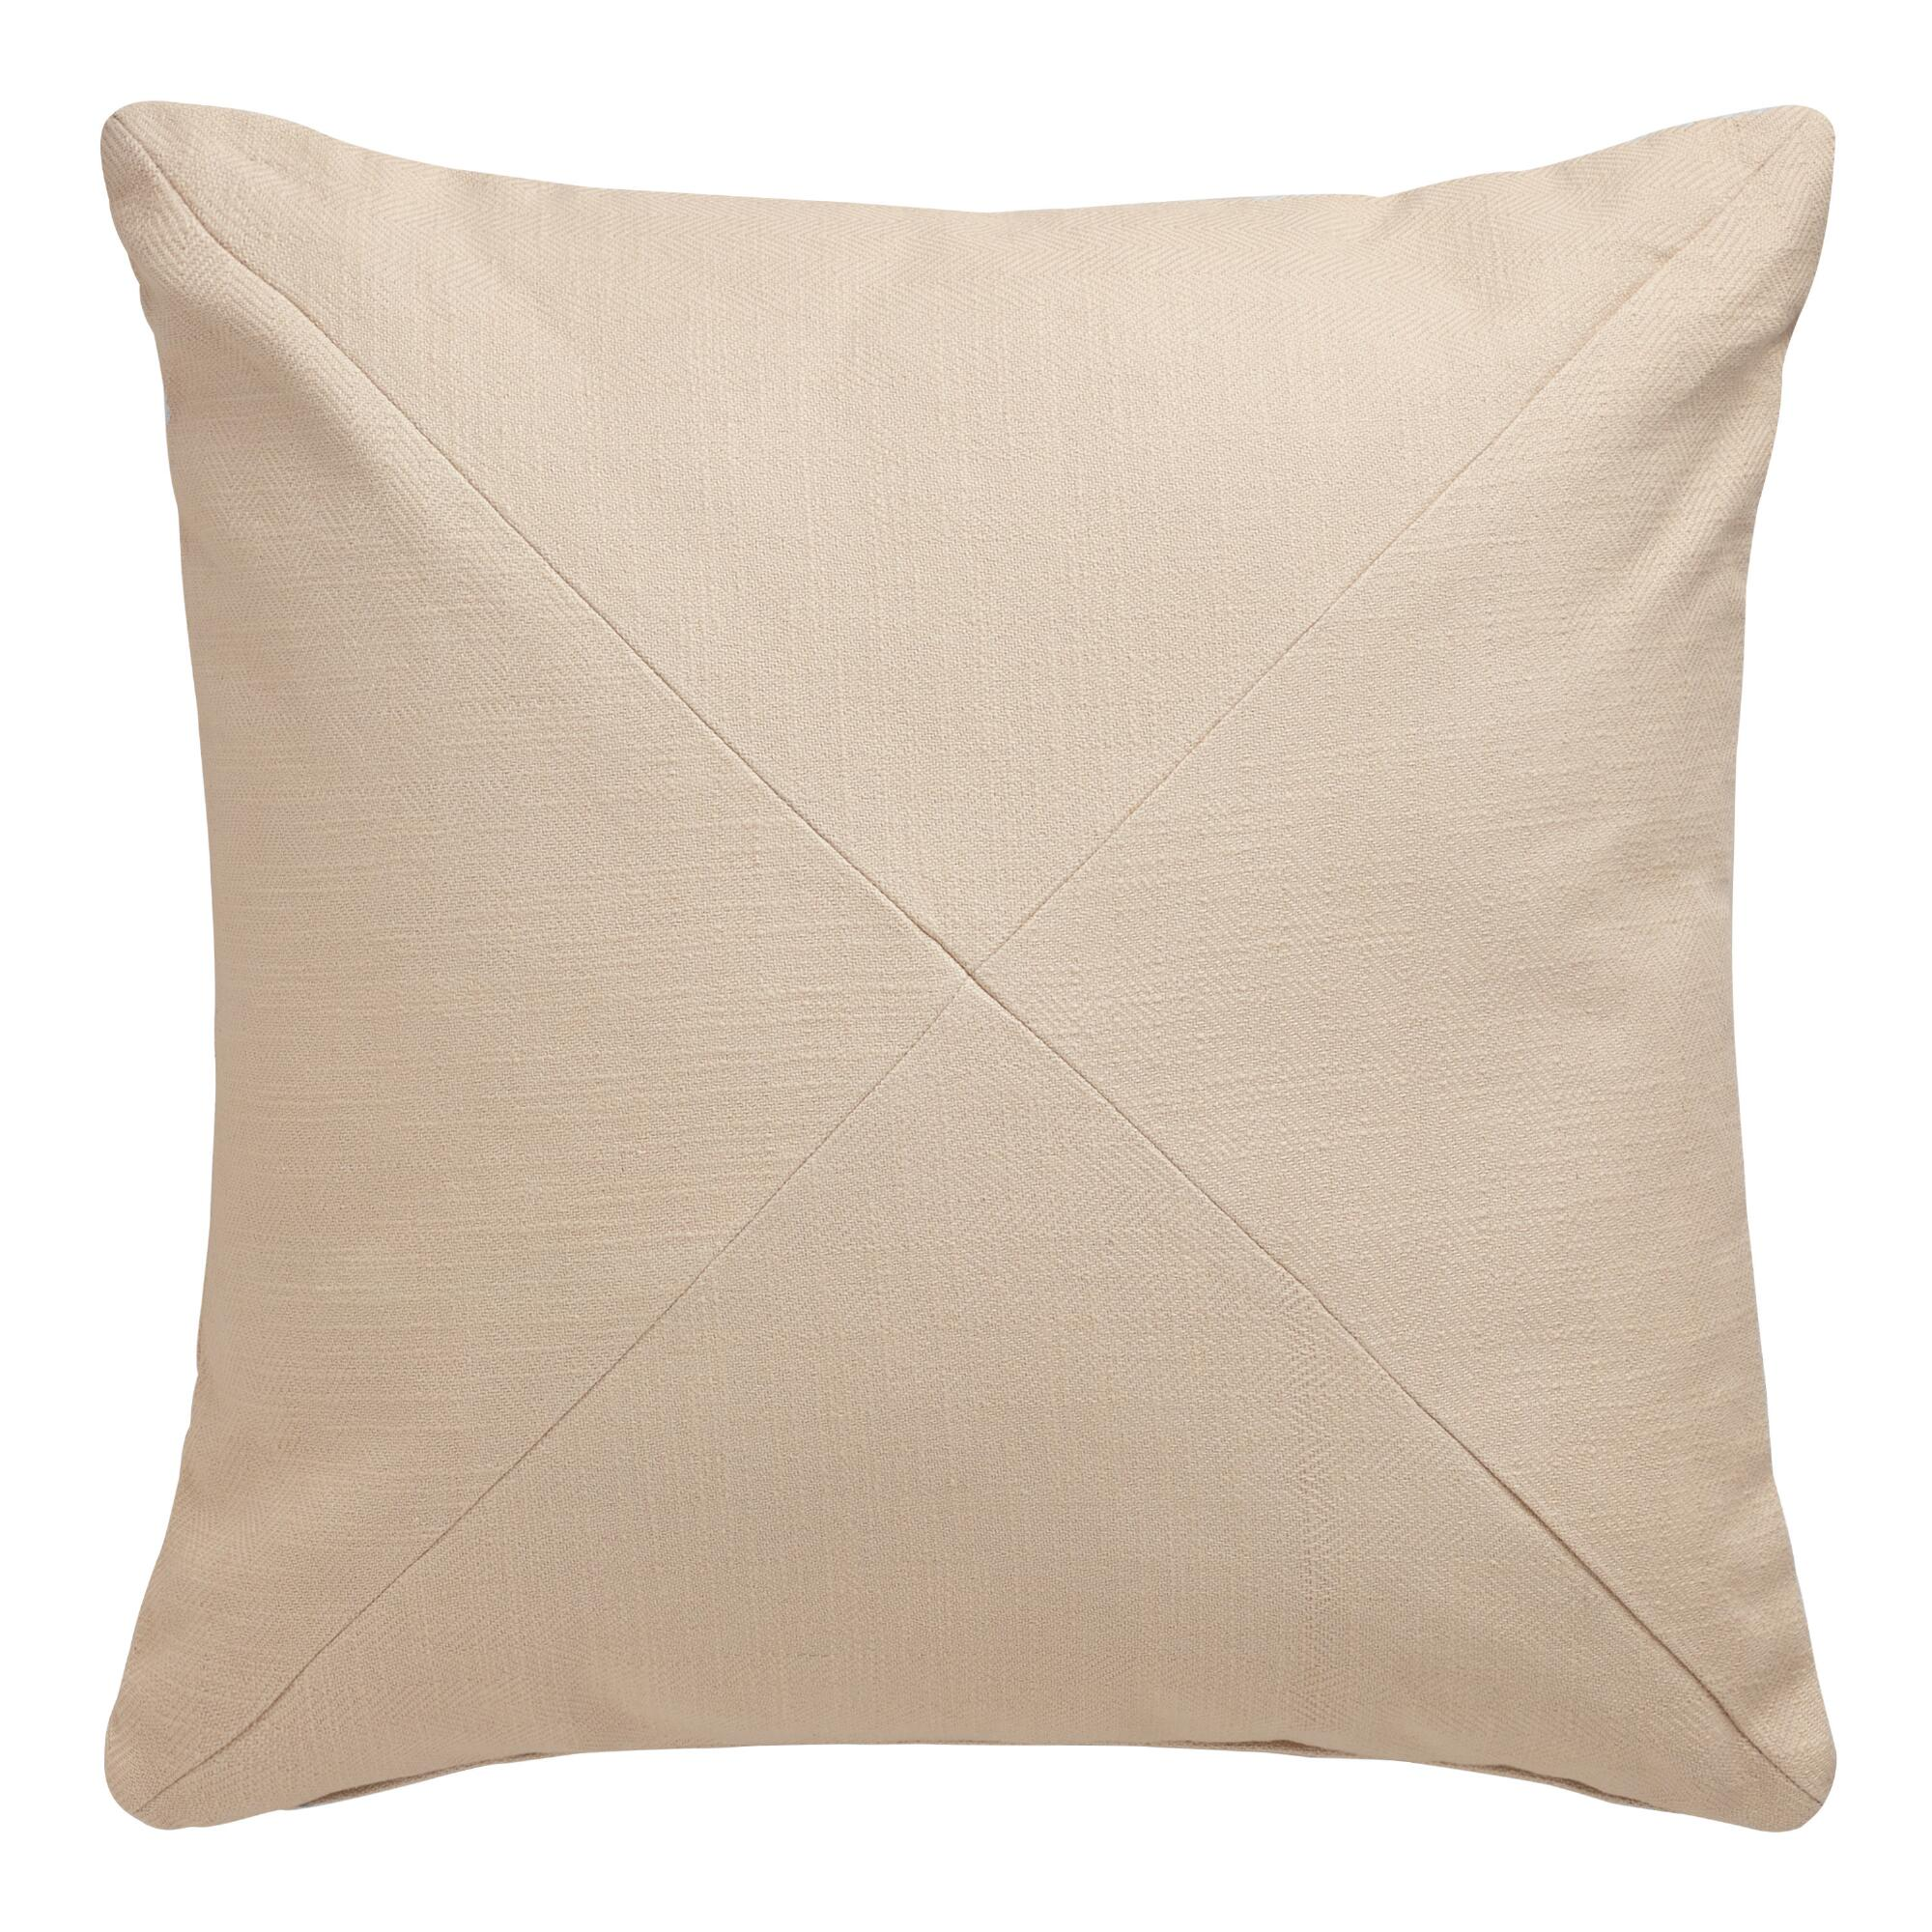 Natural Herringbone Cotton Throw Pillow: White/Natural - 20